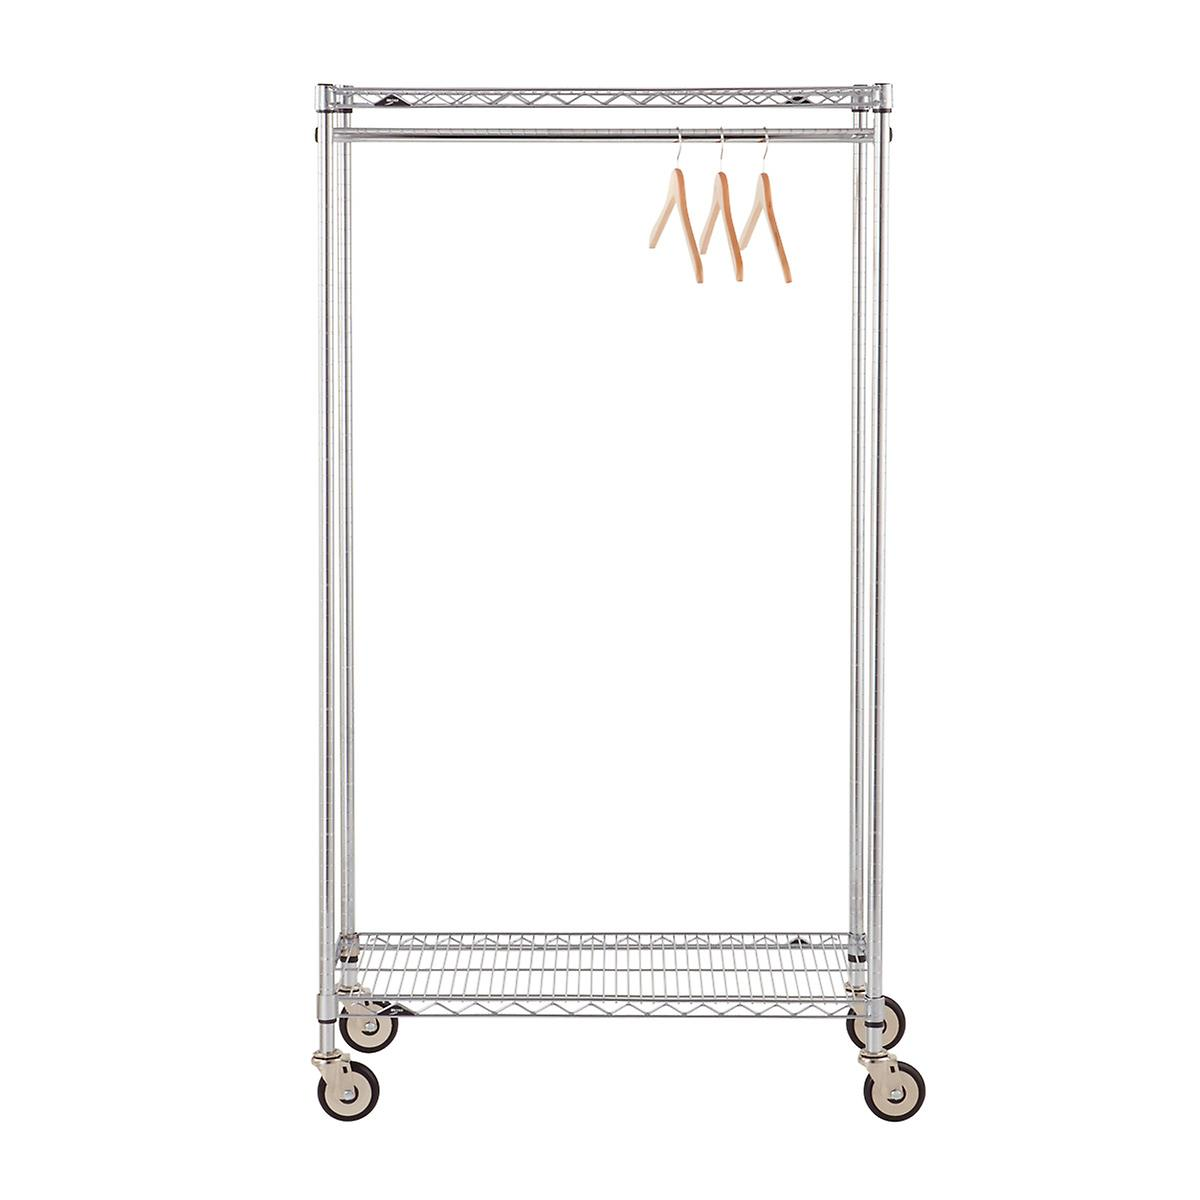 Metro Commercial Garment Rack